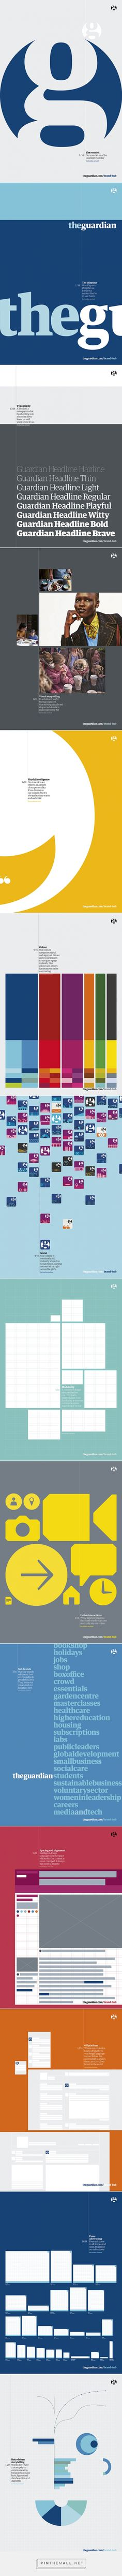 The Guardian's newly released brand guidelines by Guardian design team